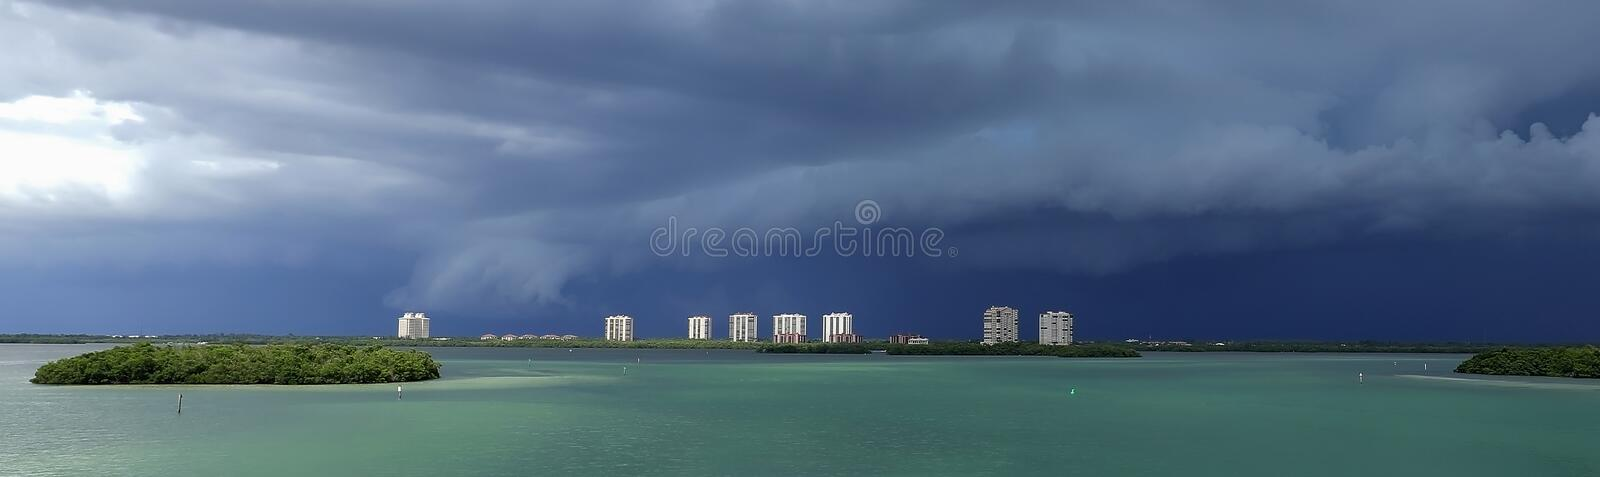 Storm clouds on the West Coast of Florida stock images